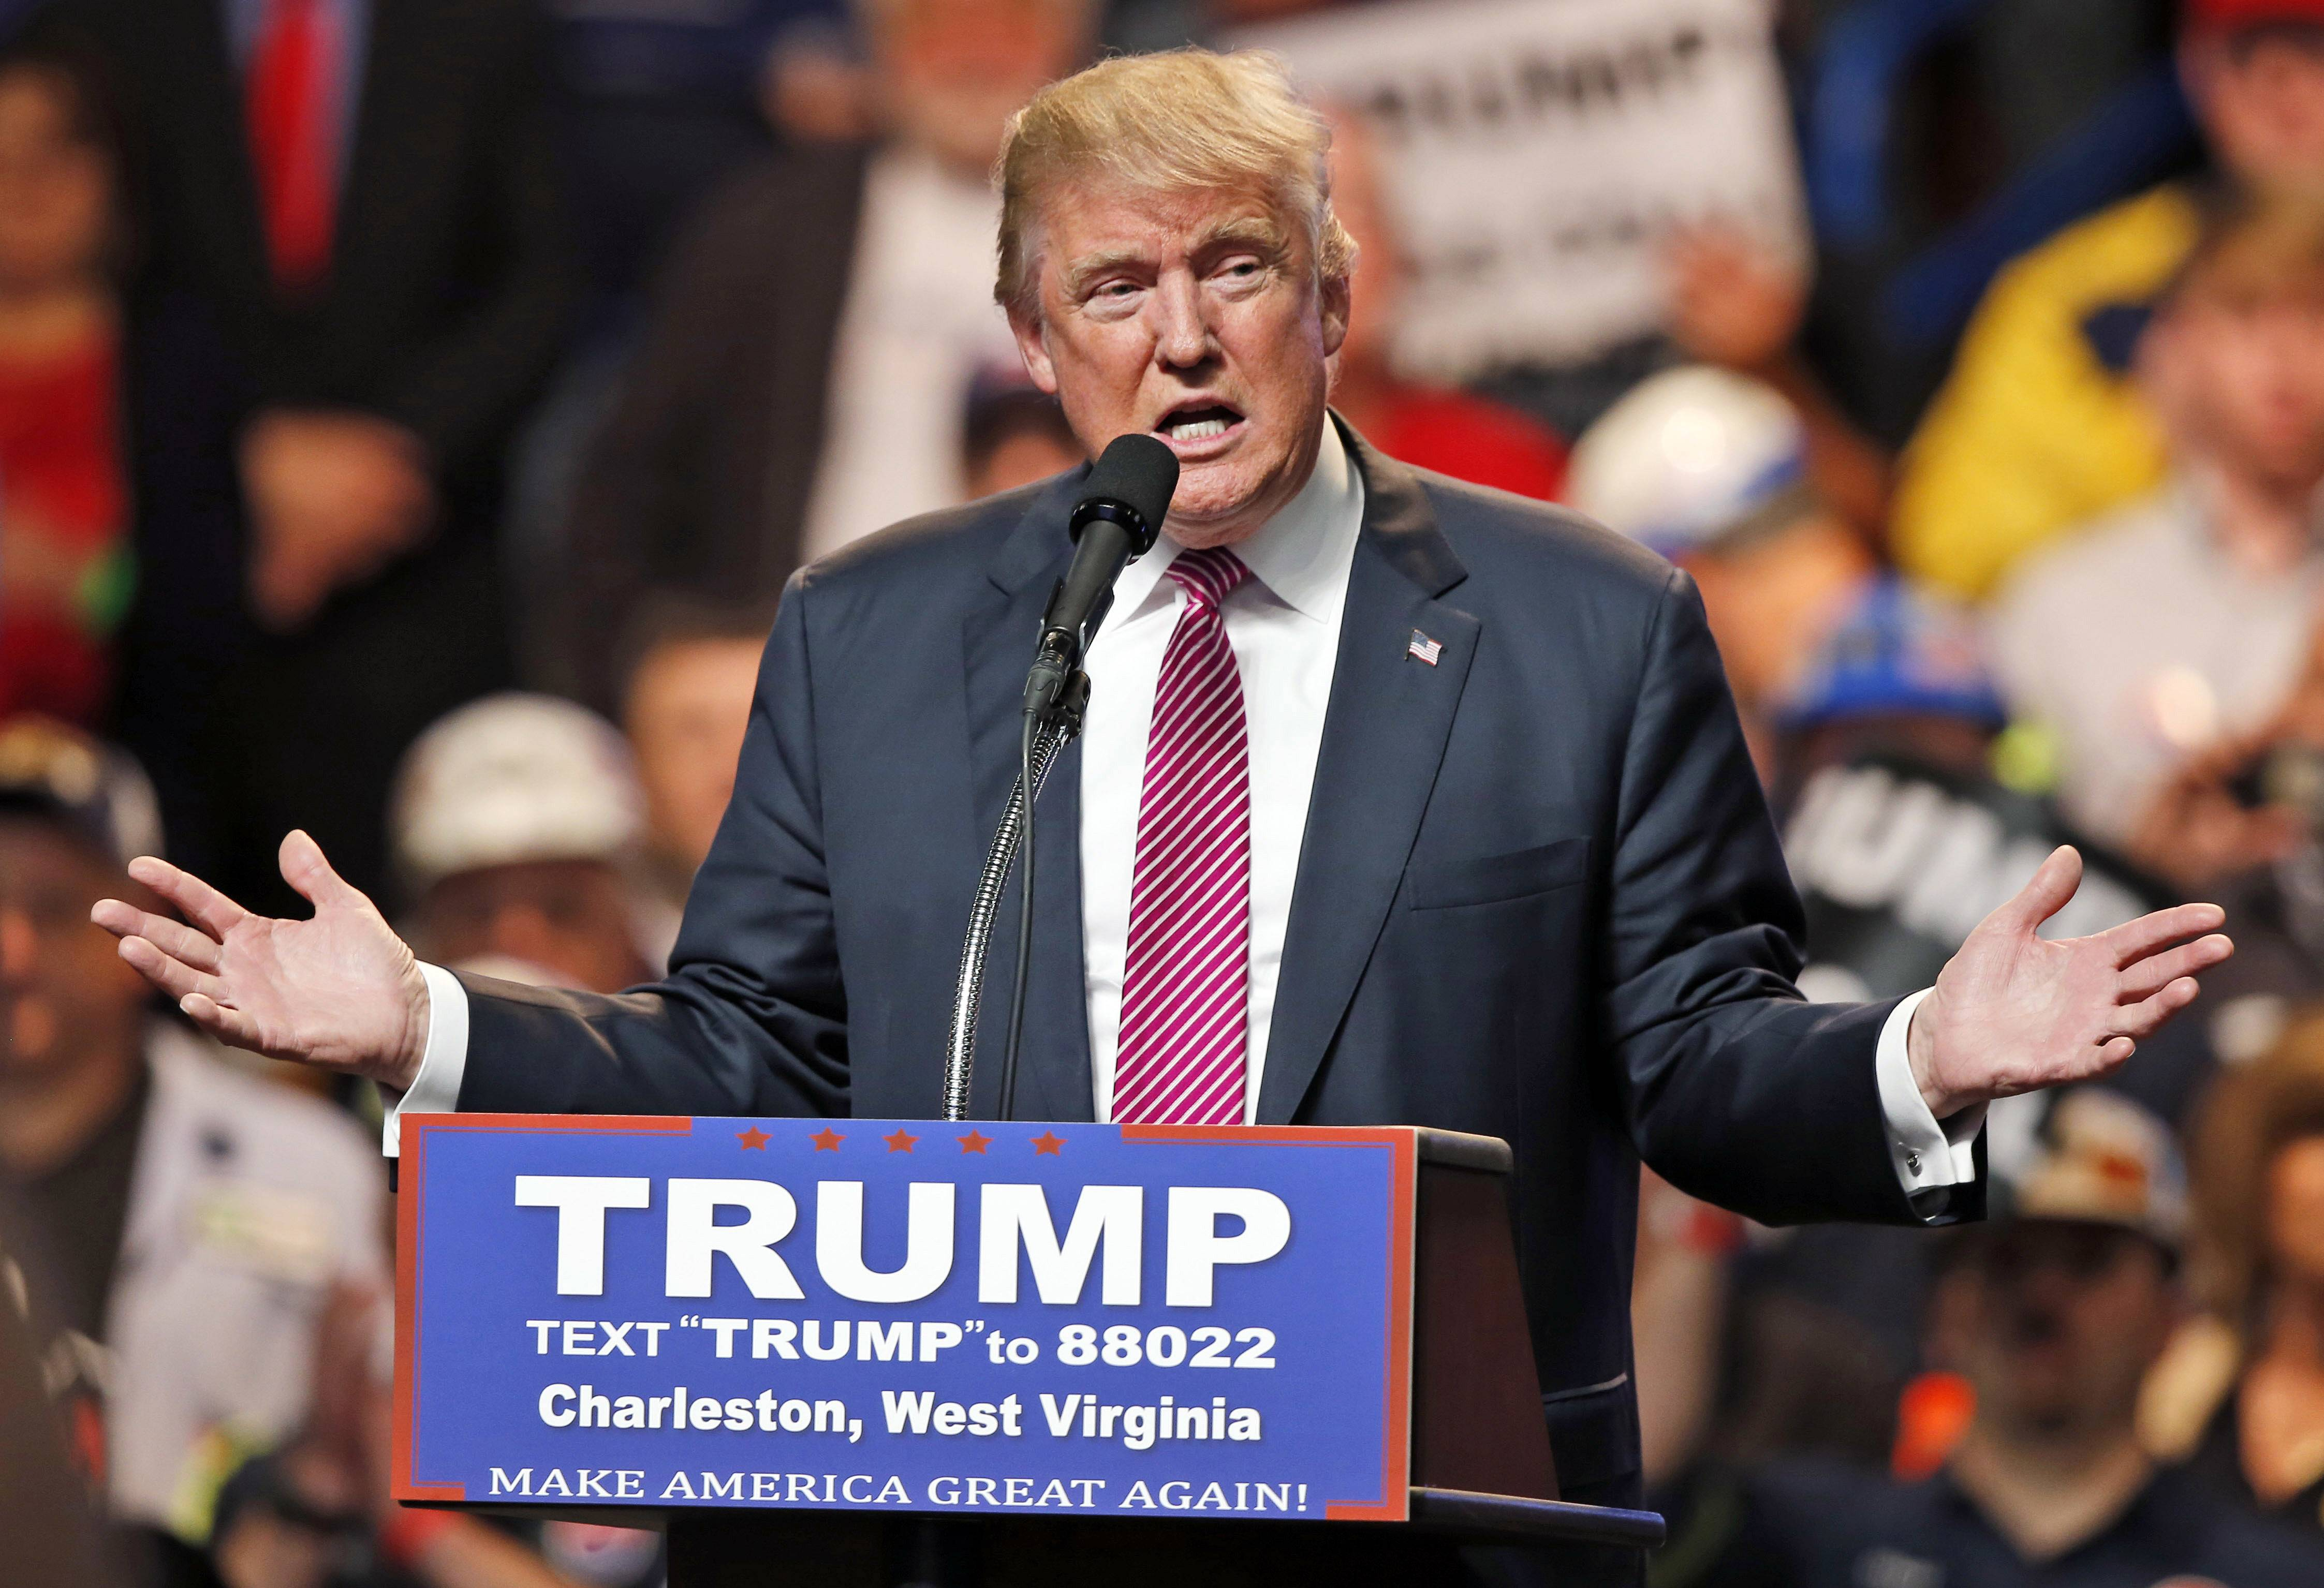 Republican presidential candidate Donald Trump gestures during a rally in Charleston, W.Va., Thursday, May 5, 2016.